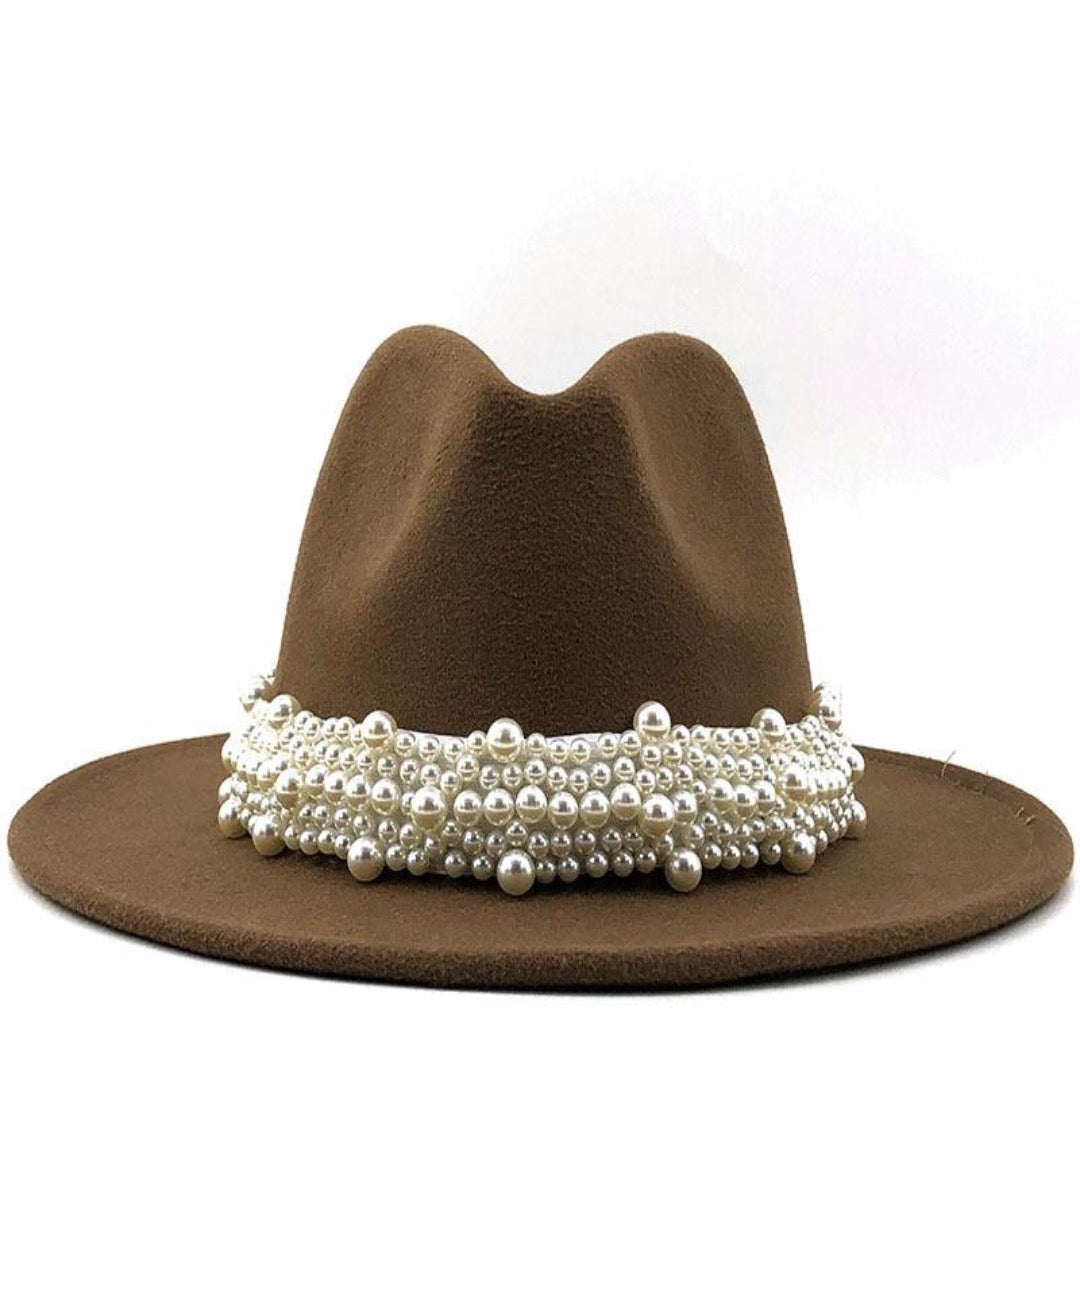 "The""Precious Pearl"" Hat"